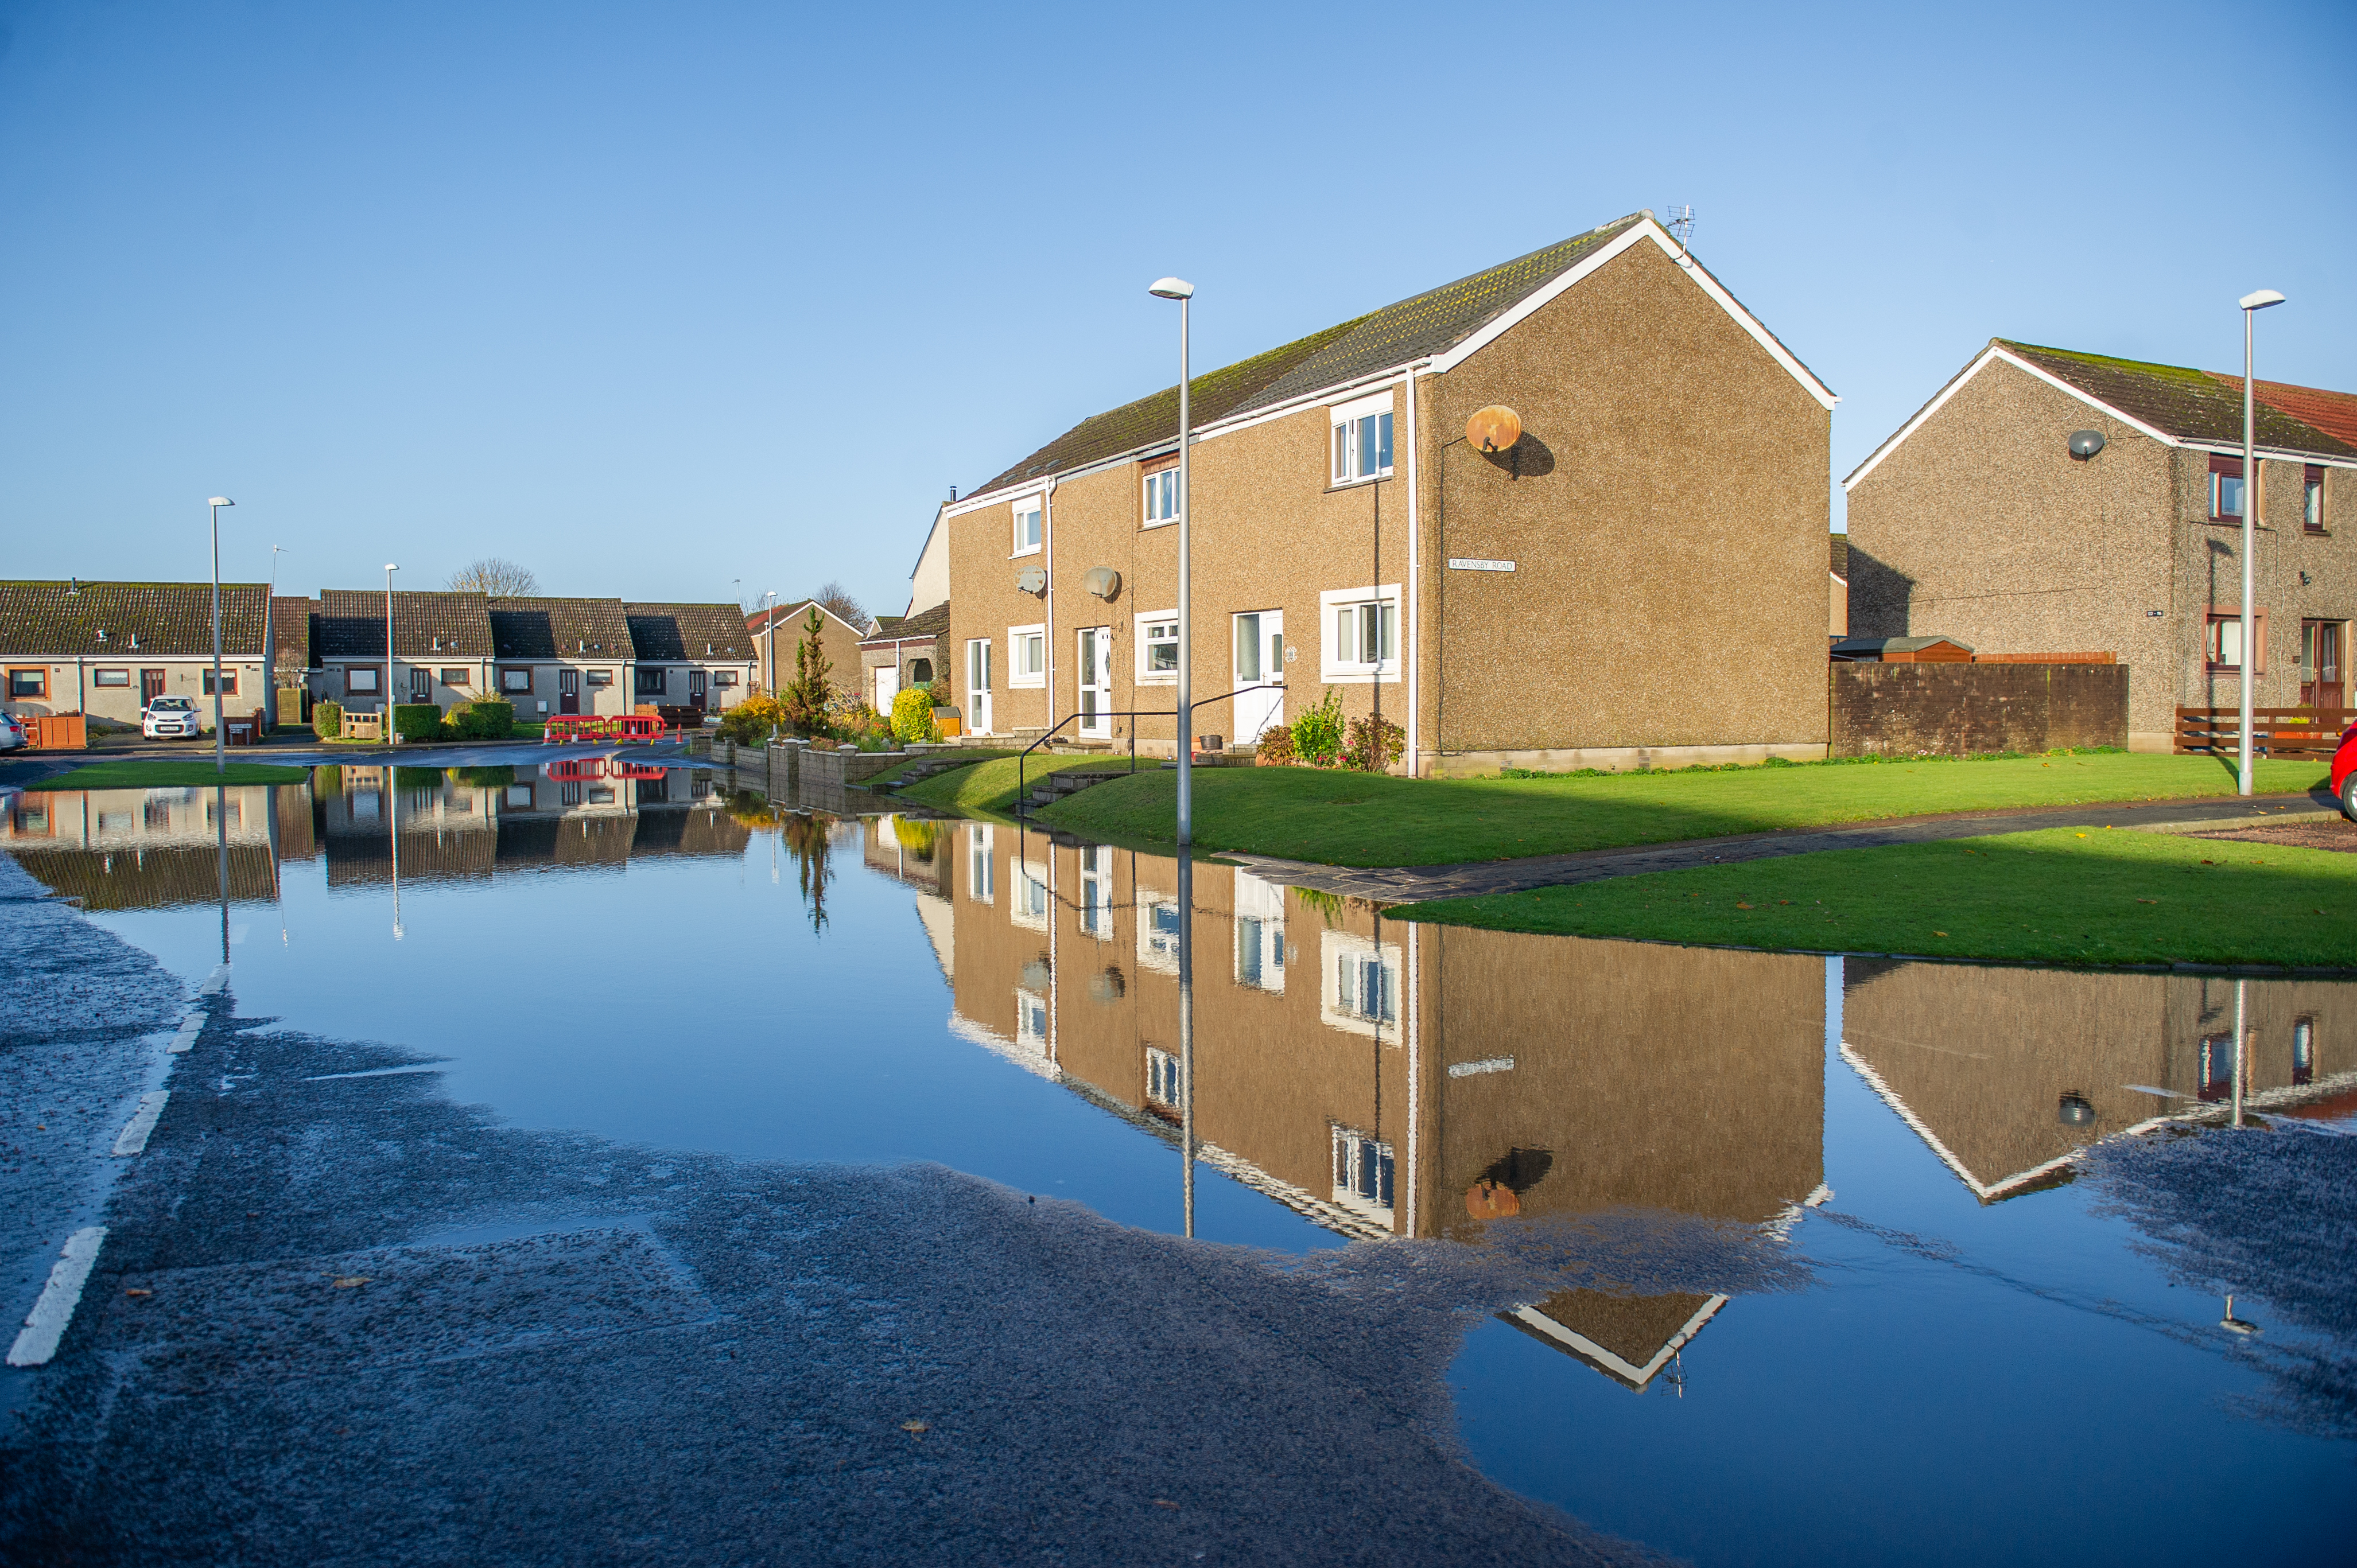 Carnoustie was badly hit by flooding late November.